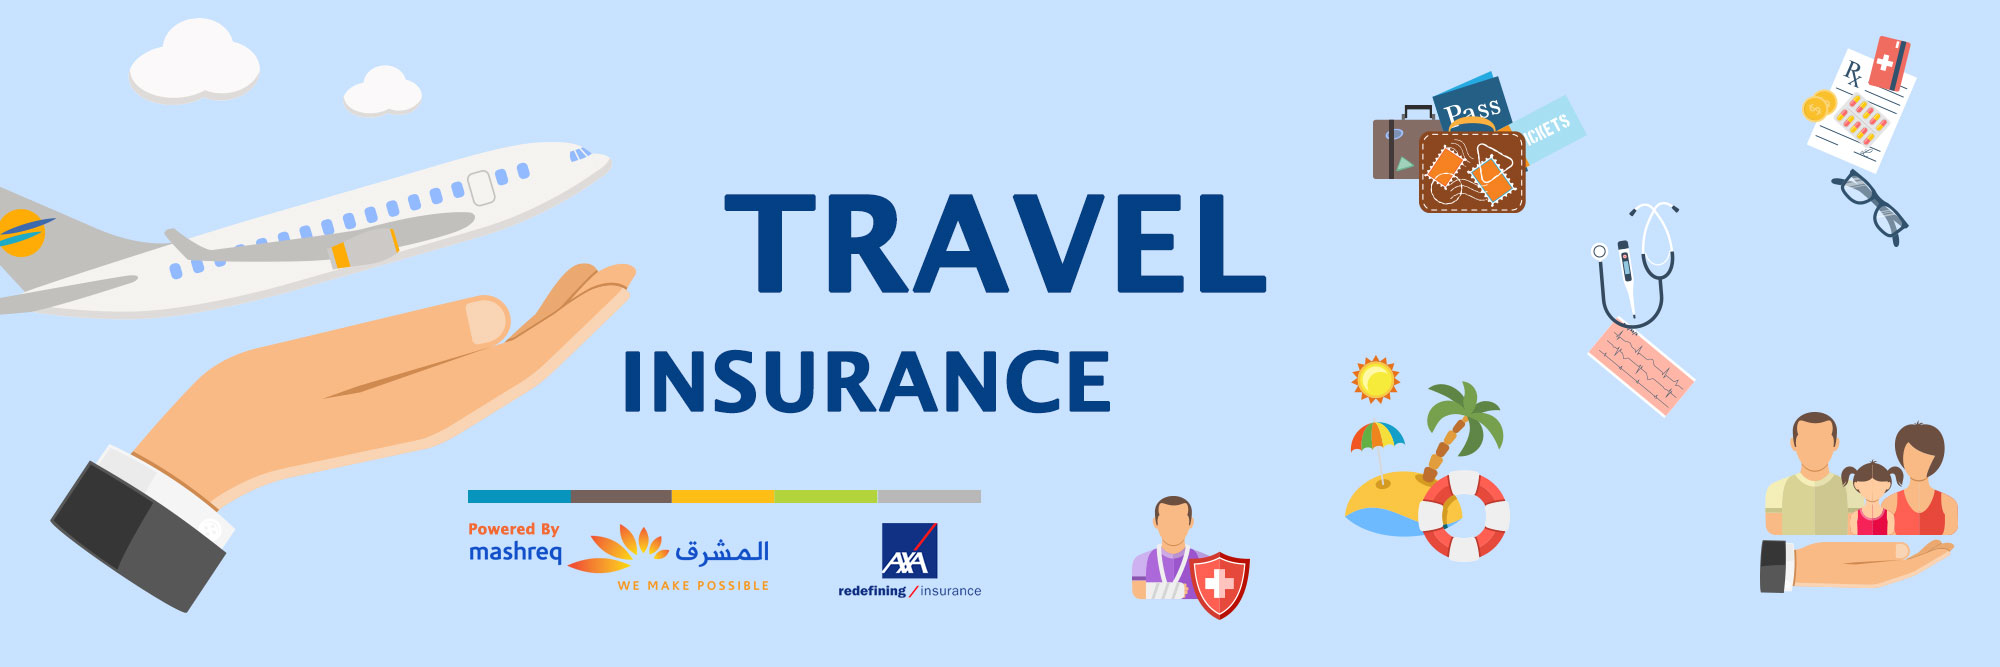 Axa Travel Insurance Dubai Online Lifehacked1st Com